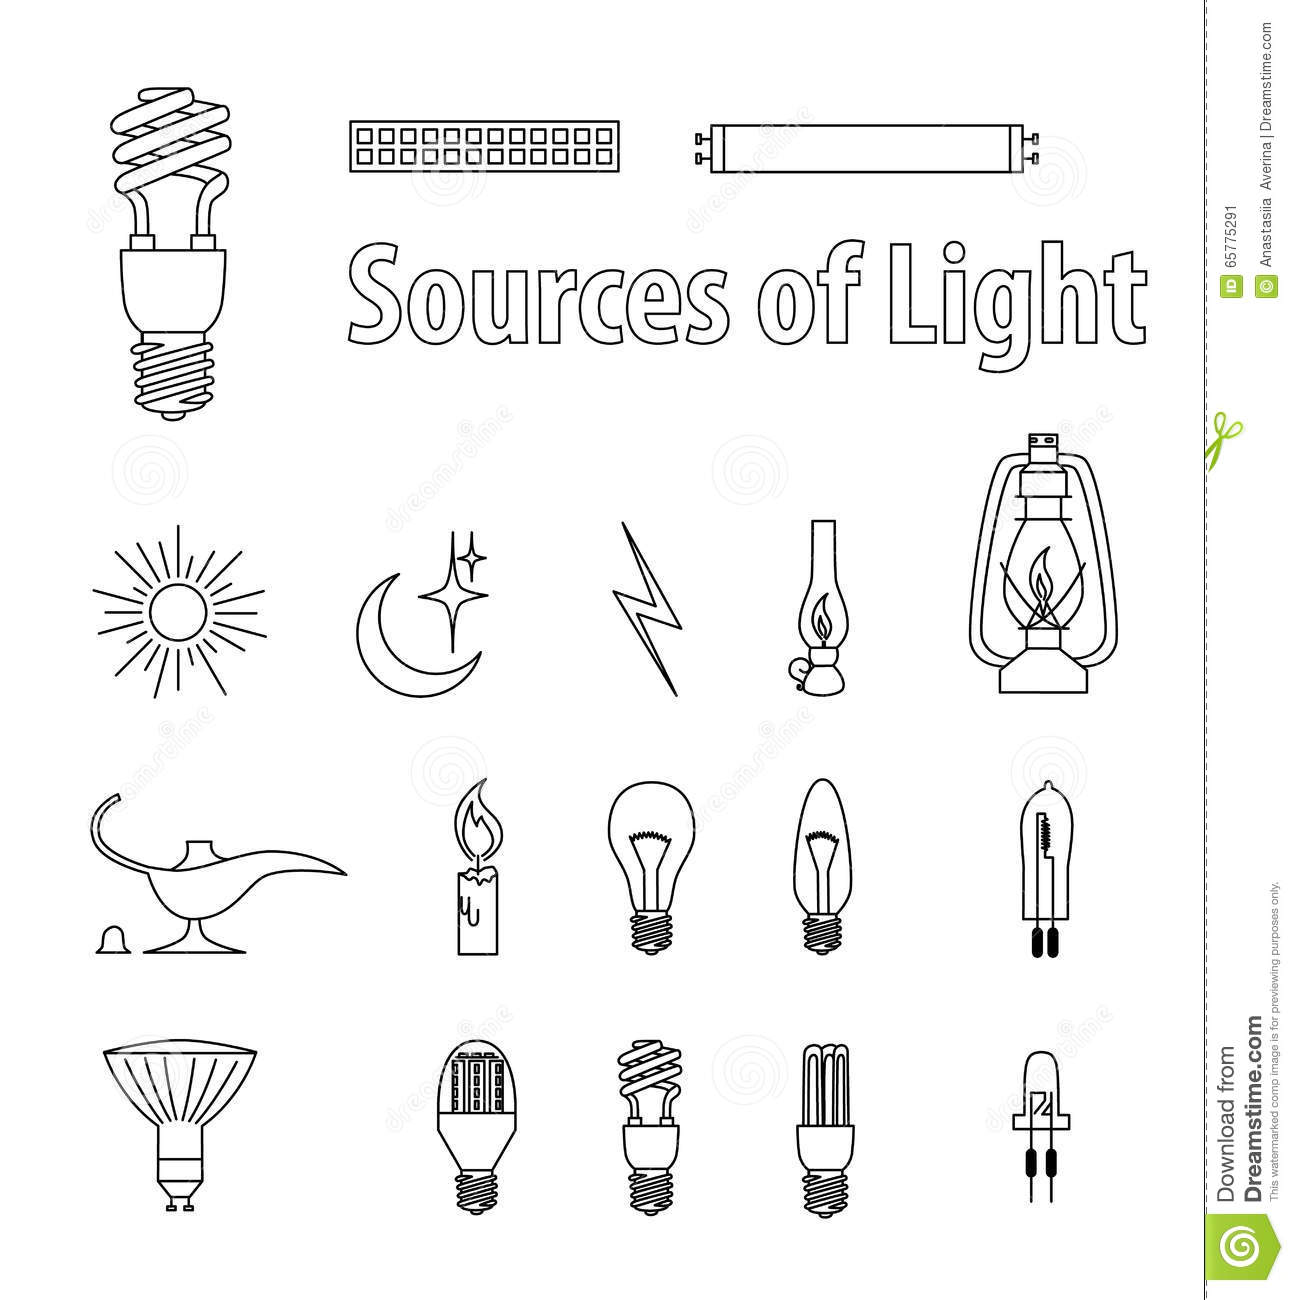 Vintage Light Bulbs Vector Illustration Source Of Light